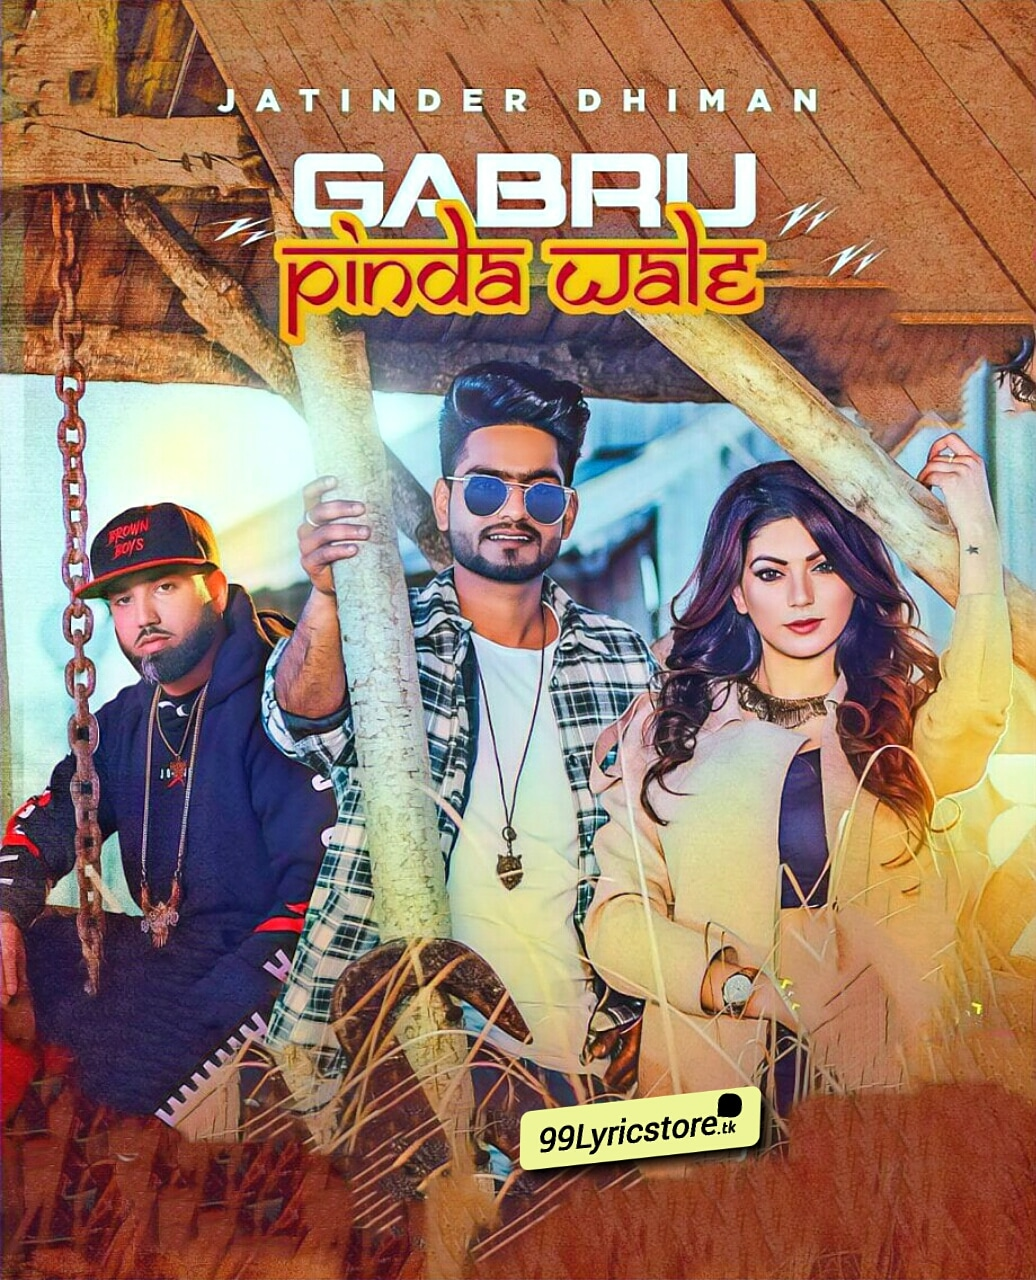 Gabru Pinda Wale Punjabi Song Lyrics Sung by Jatinder Dhiman